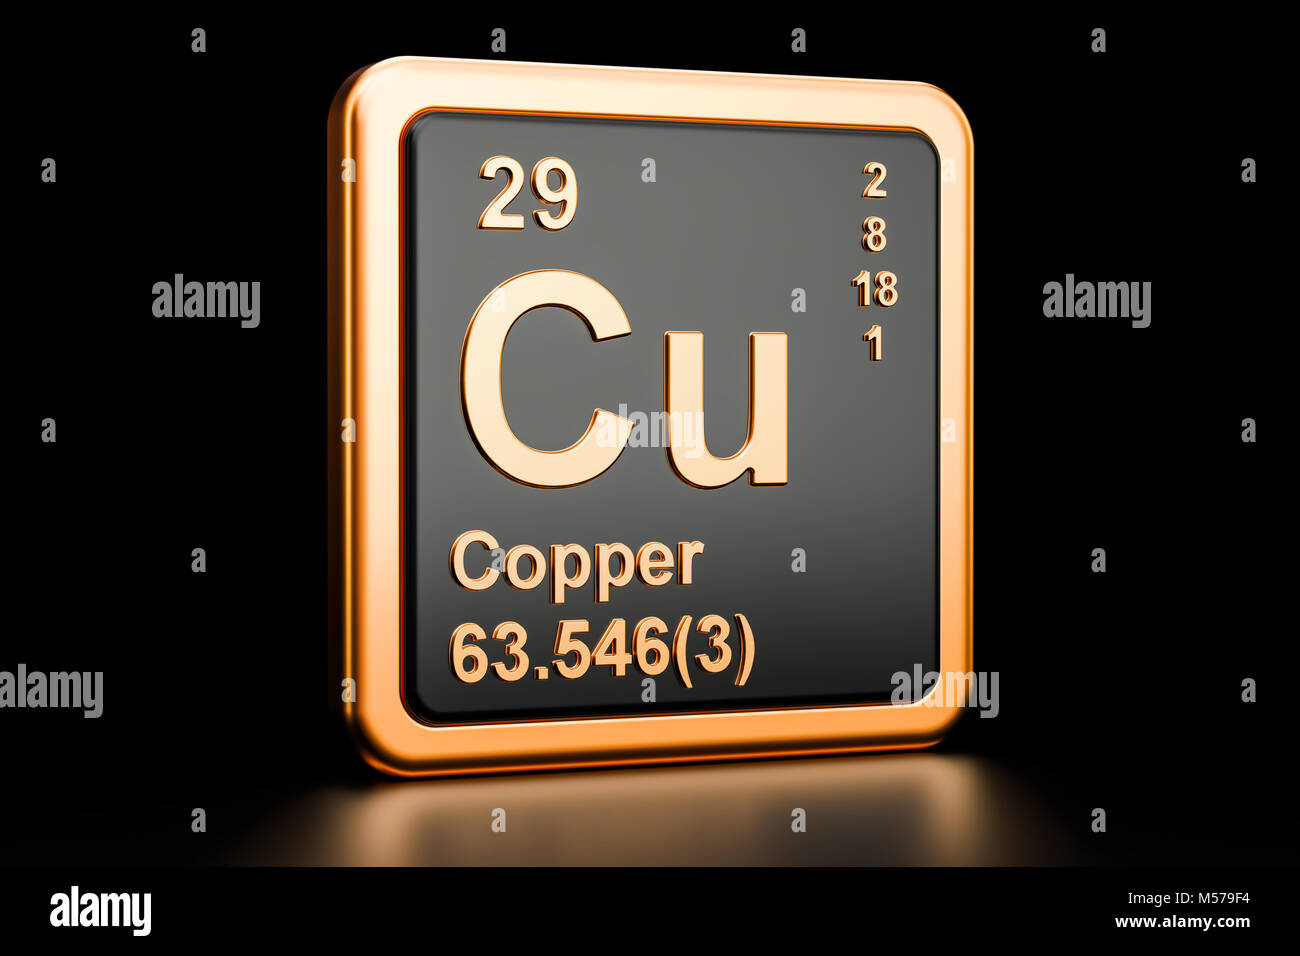 copper chemical element stockfotos copper chemical element bilder alamy. Black Bedroom Furniture Sets. Home Design Ideas